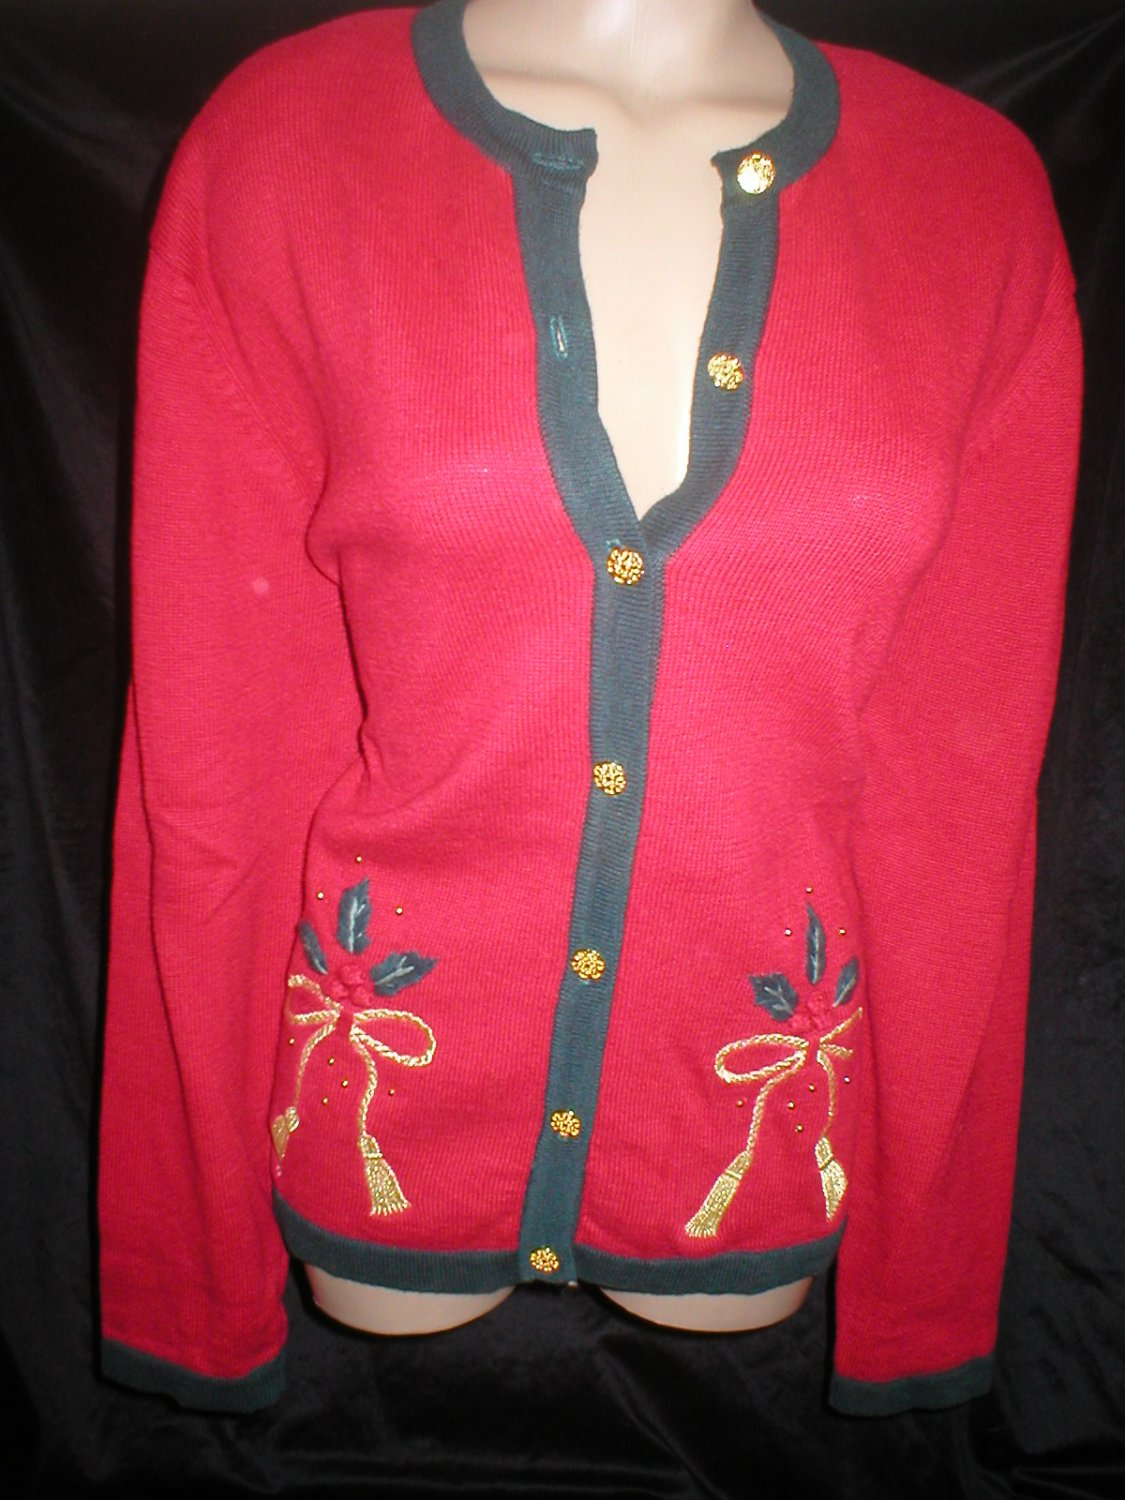 Leslie Fay Red & Gray Knit Cardigan Christmas Sweater M 10